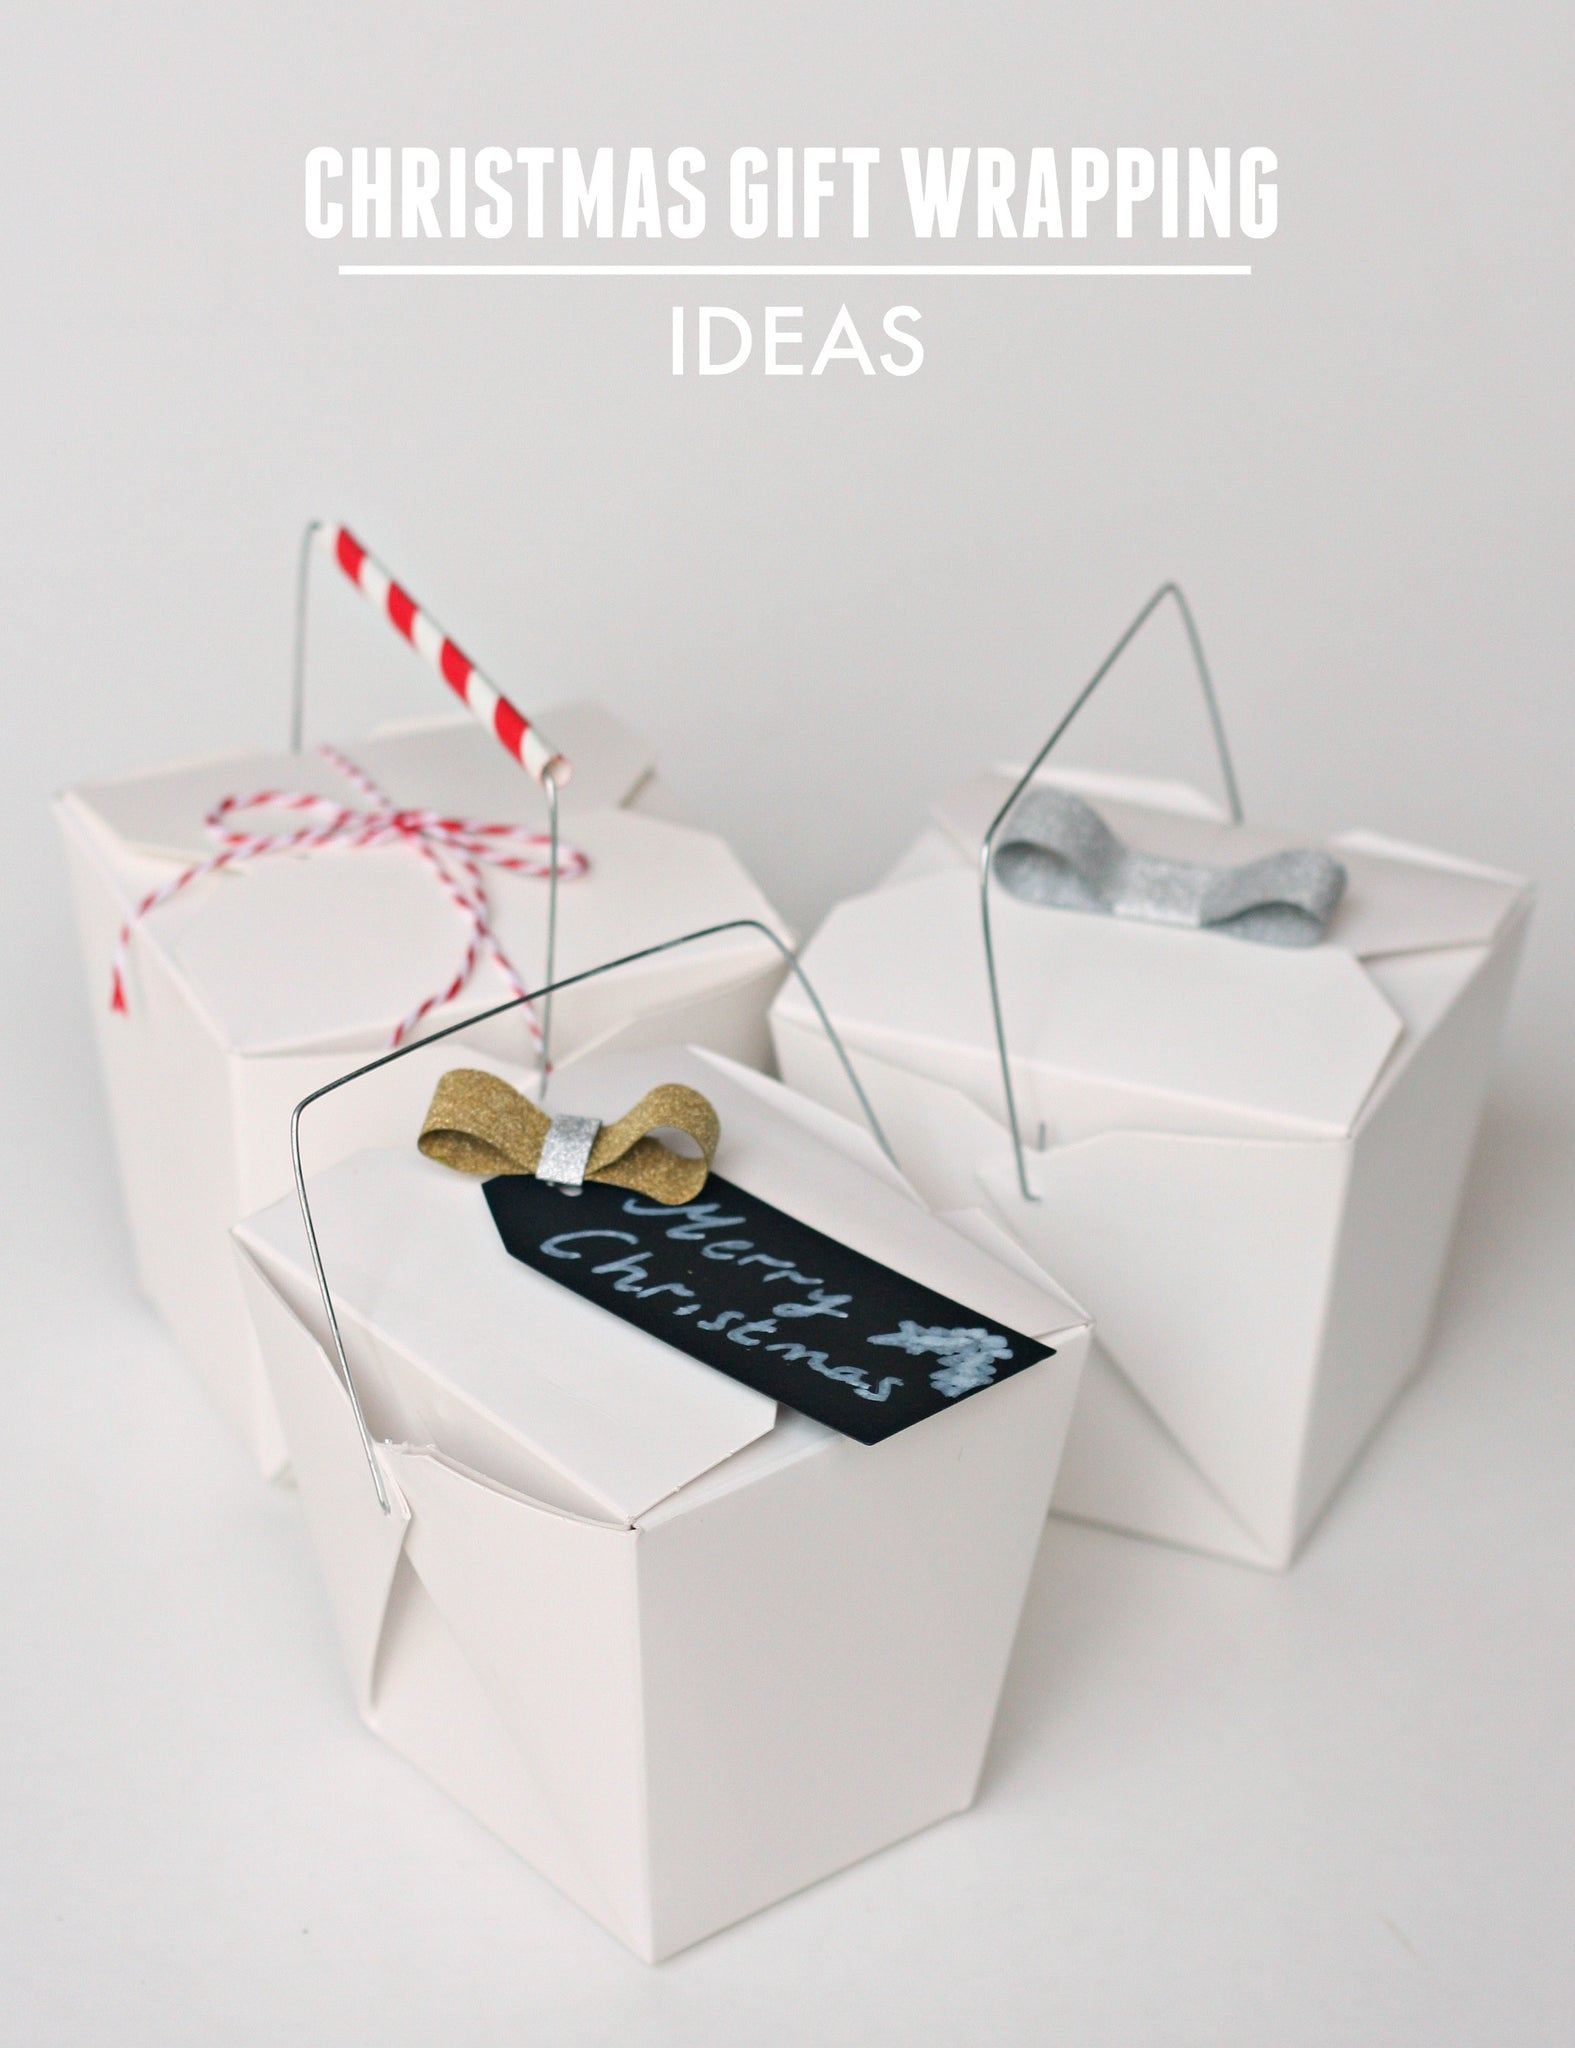 3 Cool Christmas Gift Wrap Ideas - Pretty Little Party Blog